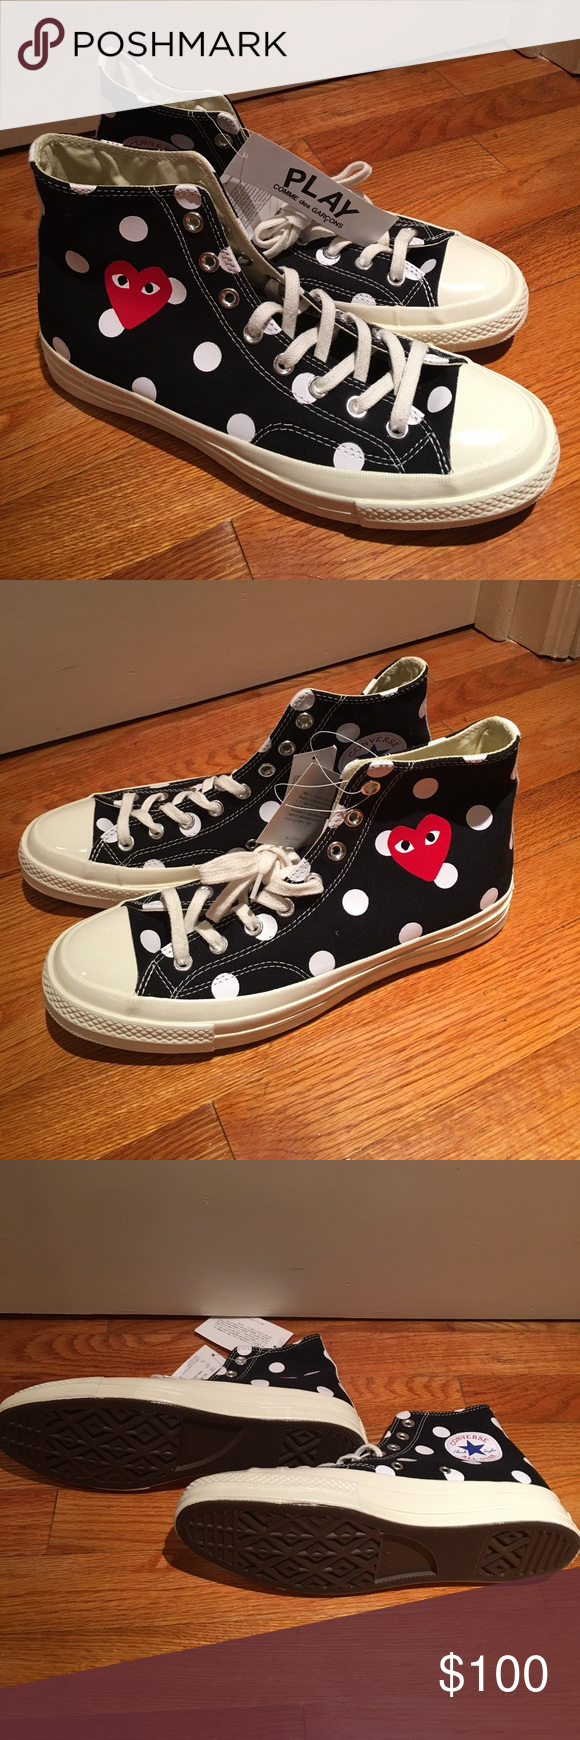 235696dd9682 Play Comme Des Garcons Converse High Tops Never worn. Brand new with tags.  High tops in mint condition. Sold out everywhere. Mens 9 US SIZING Comme des  ...